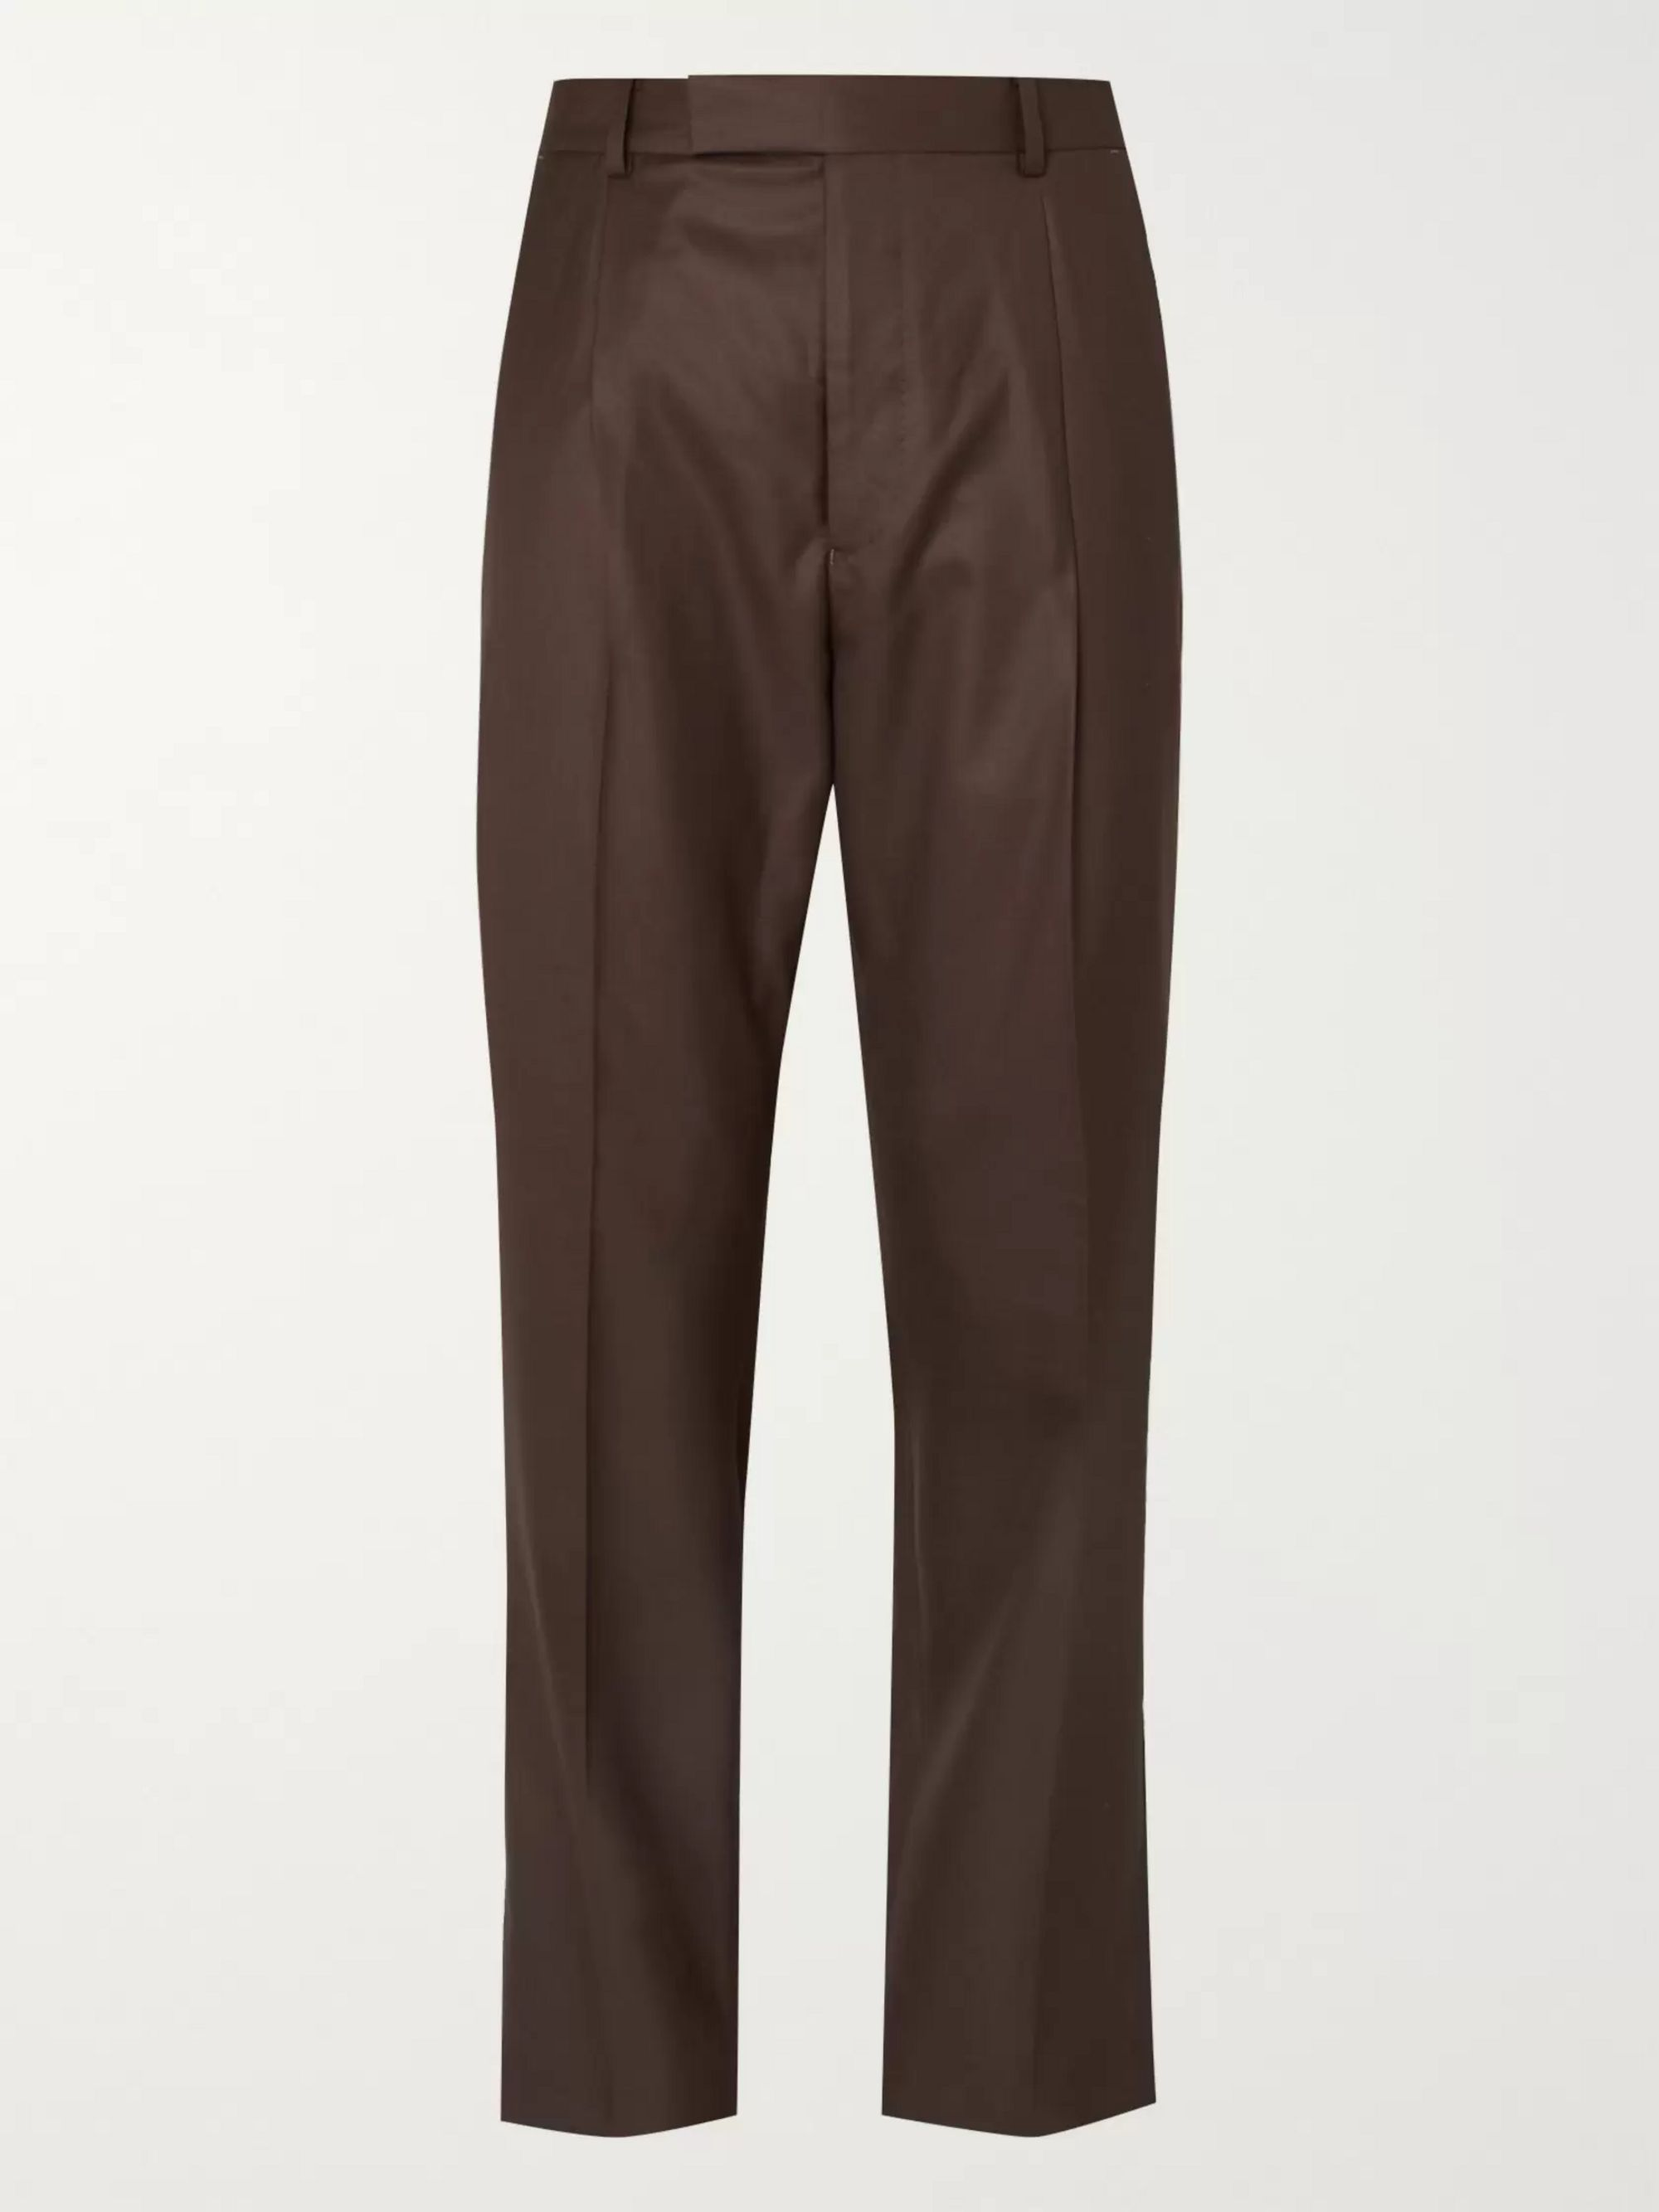 Wacko Maria Pleated Wool Suit Trousers